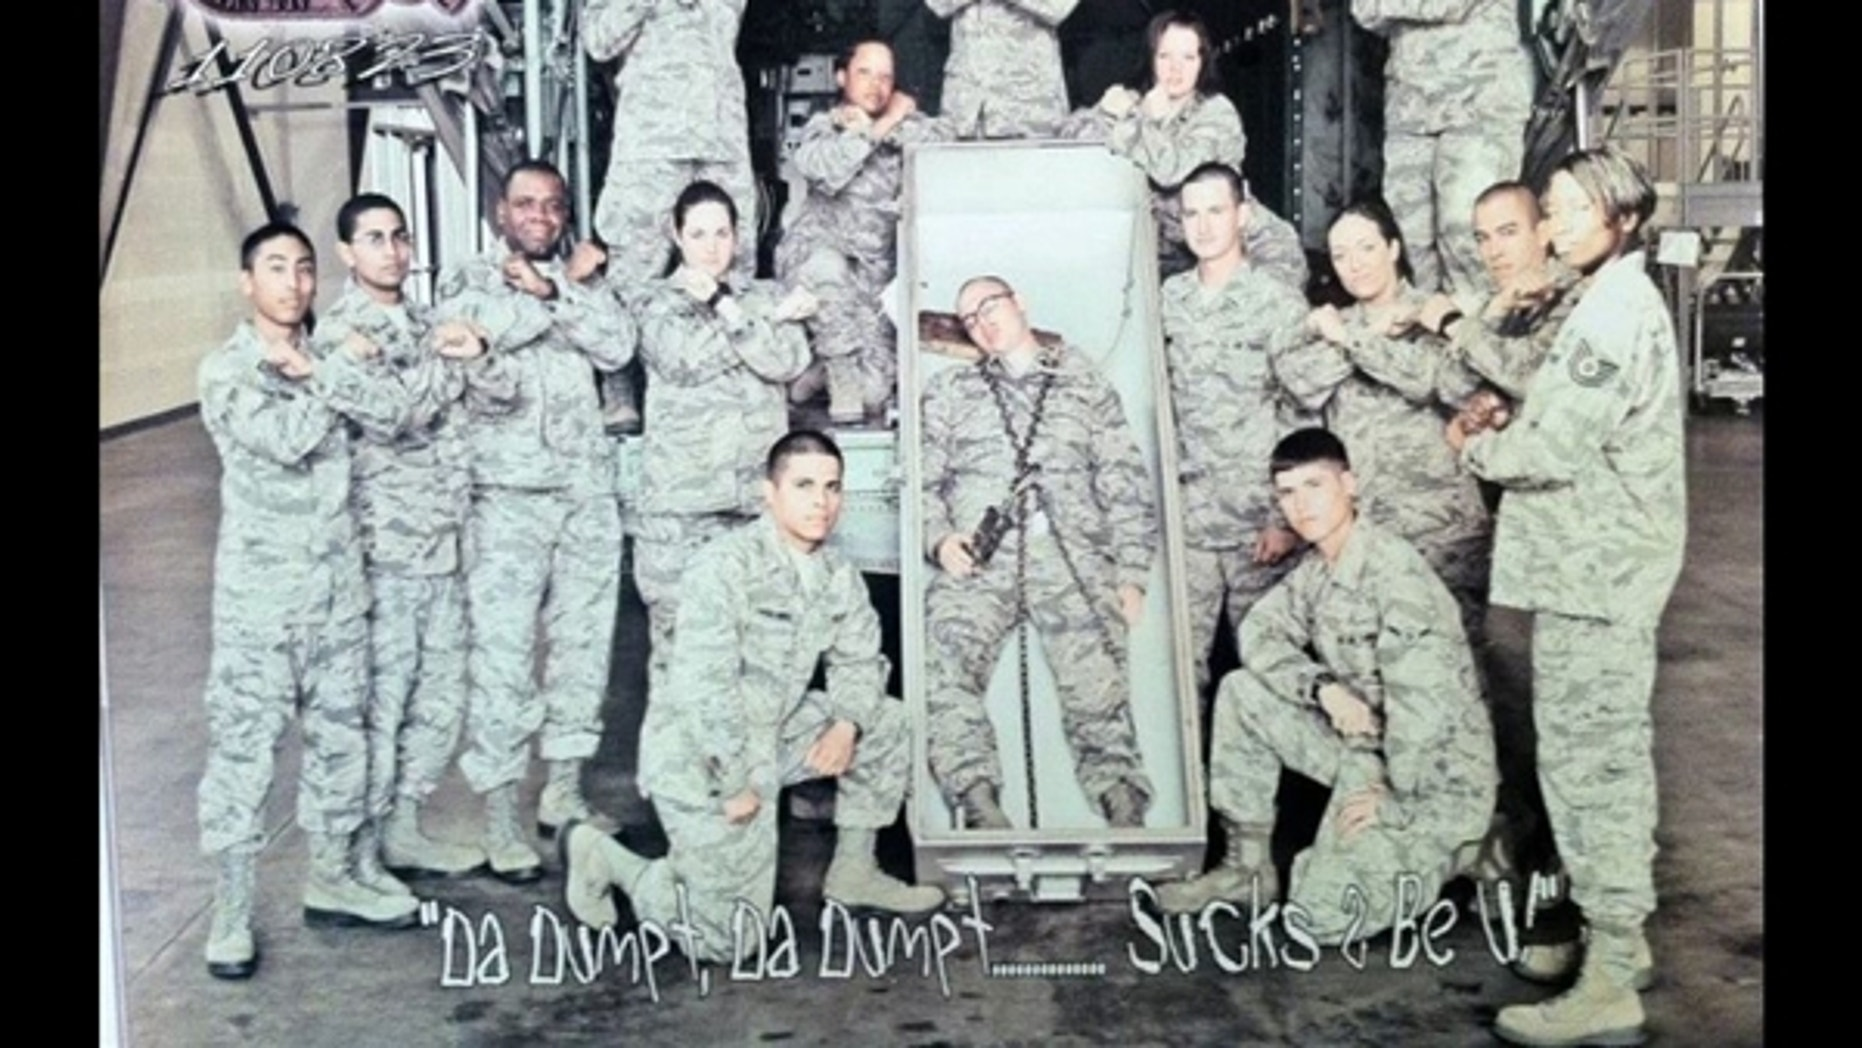 AirForce officials say they are investigating this photo of 15 airmen posing with another airman pretending to be dead and lying in an open casket with a noose around his neck.